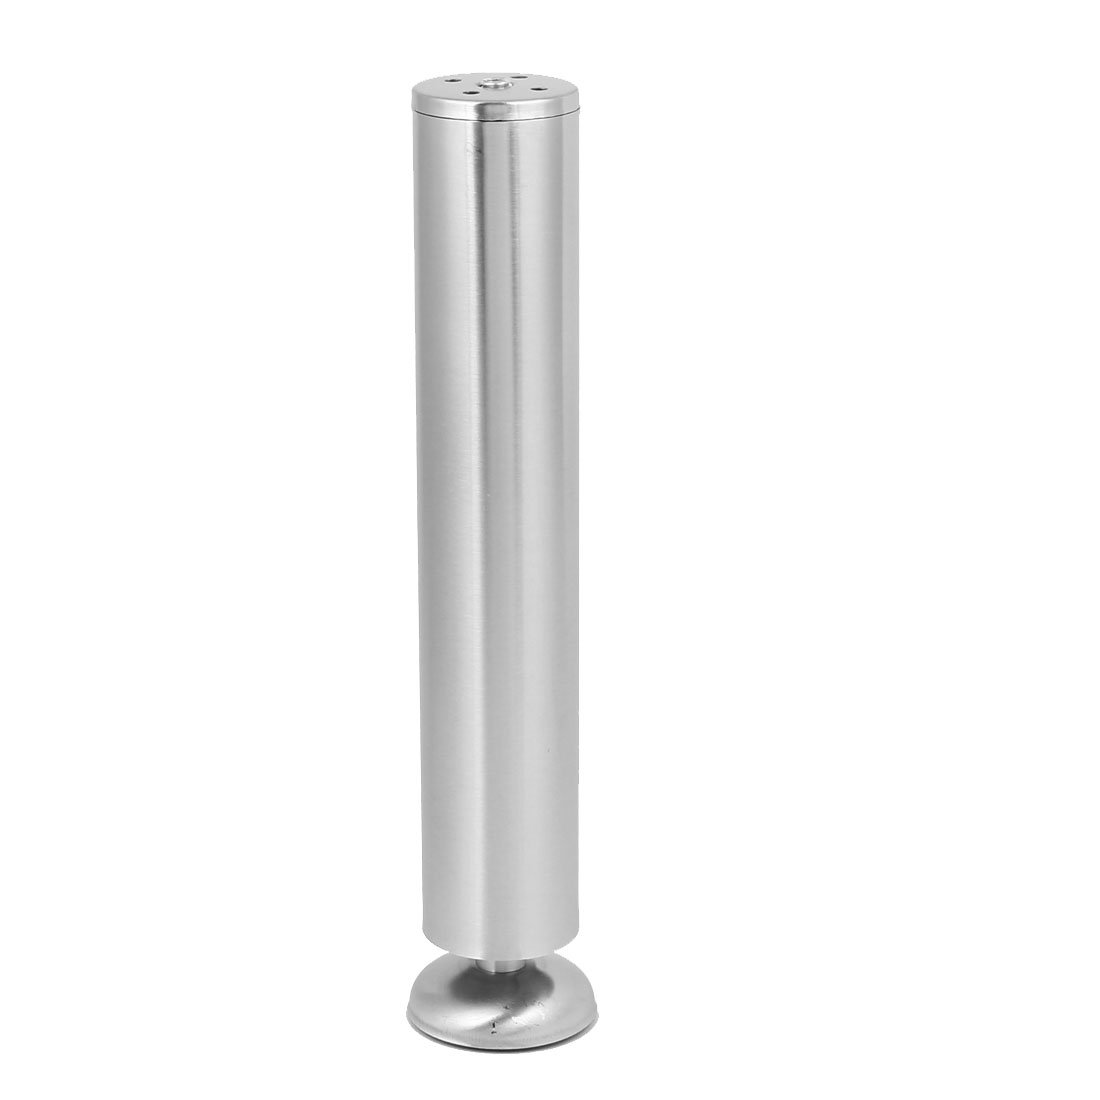 uxcell Cupboard Cabinet Metal Round Stand Adjustable Leg Feet Silver Tone 50mmx300mm